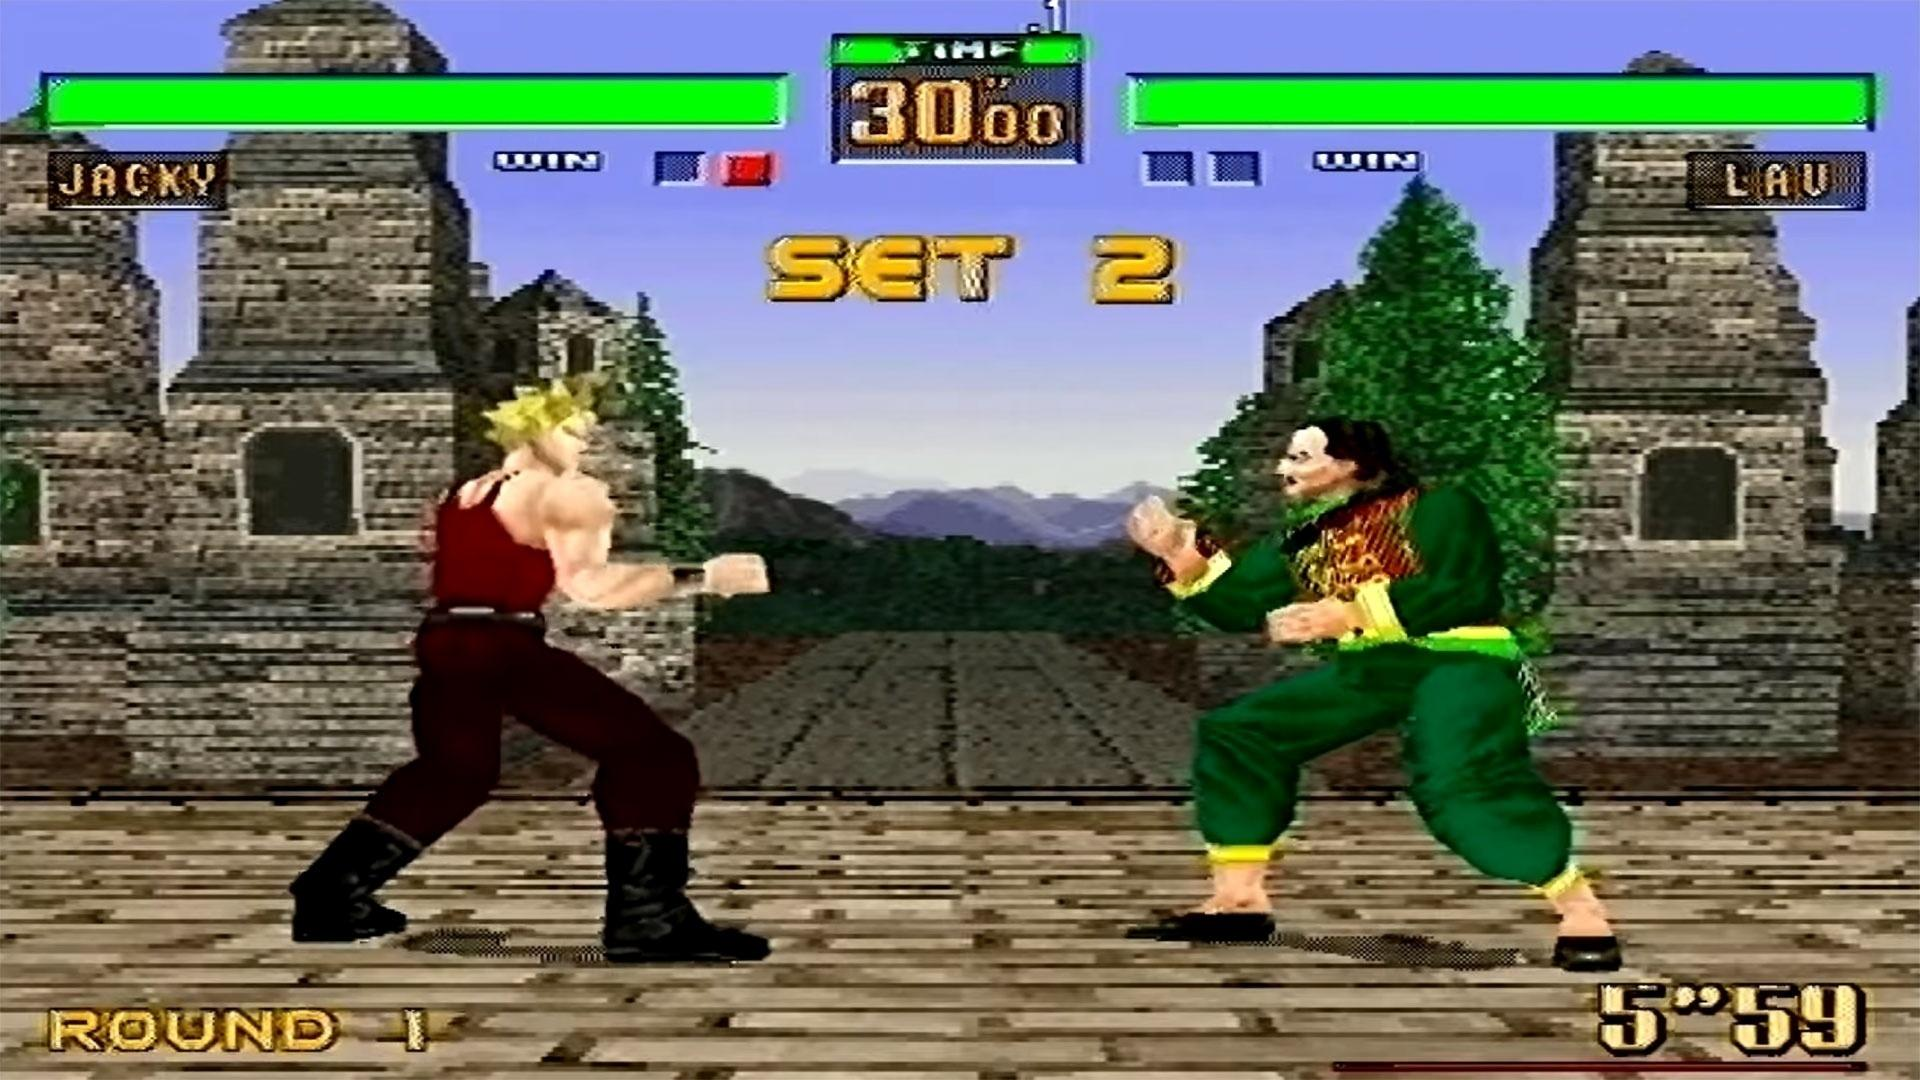 [Image: virtua-fighter-2-1574091365996_v2_1920x1.jpg]